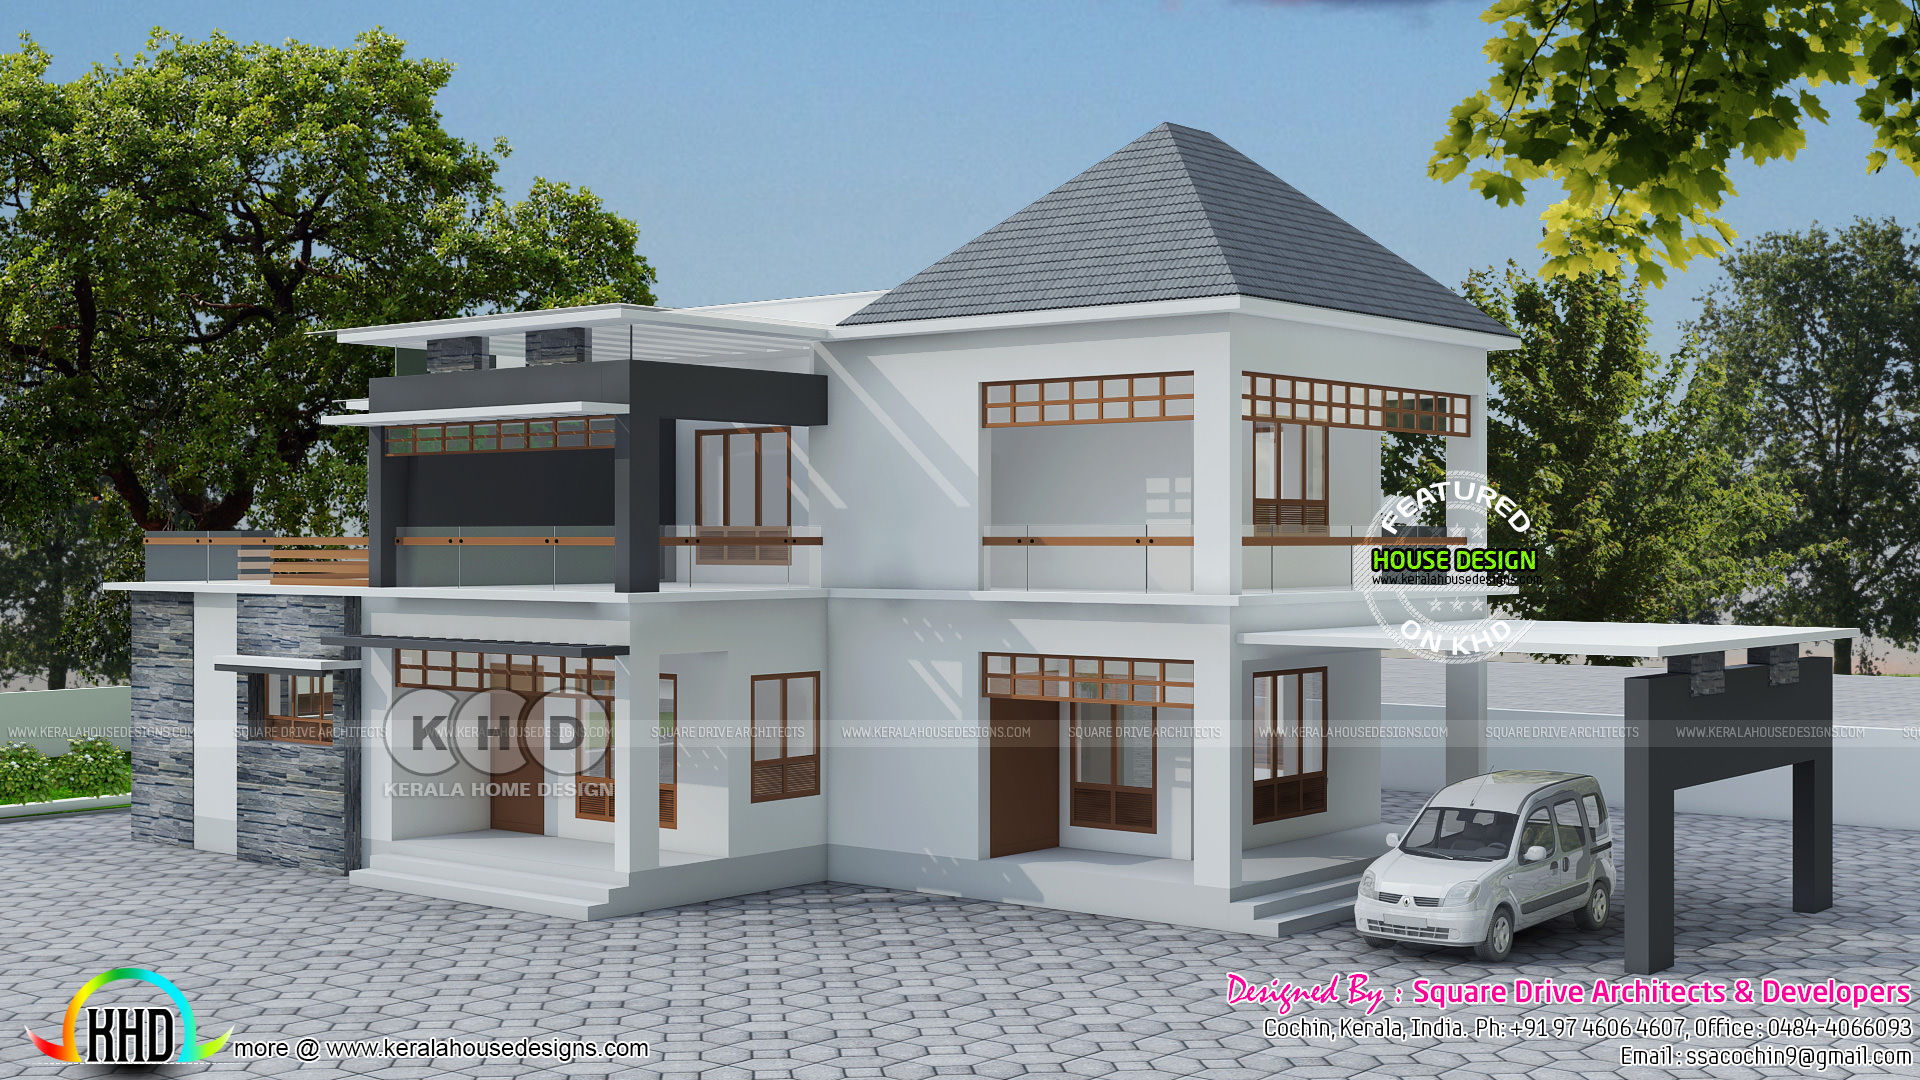 Modern 4 bhk residence plan kerala home design and floor for 4 bhk villa interior design